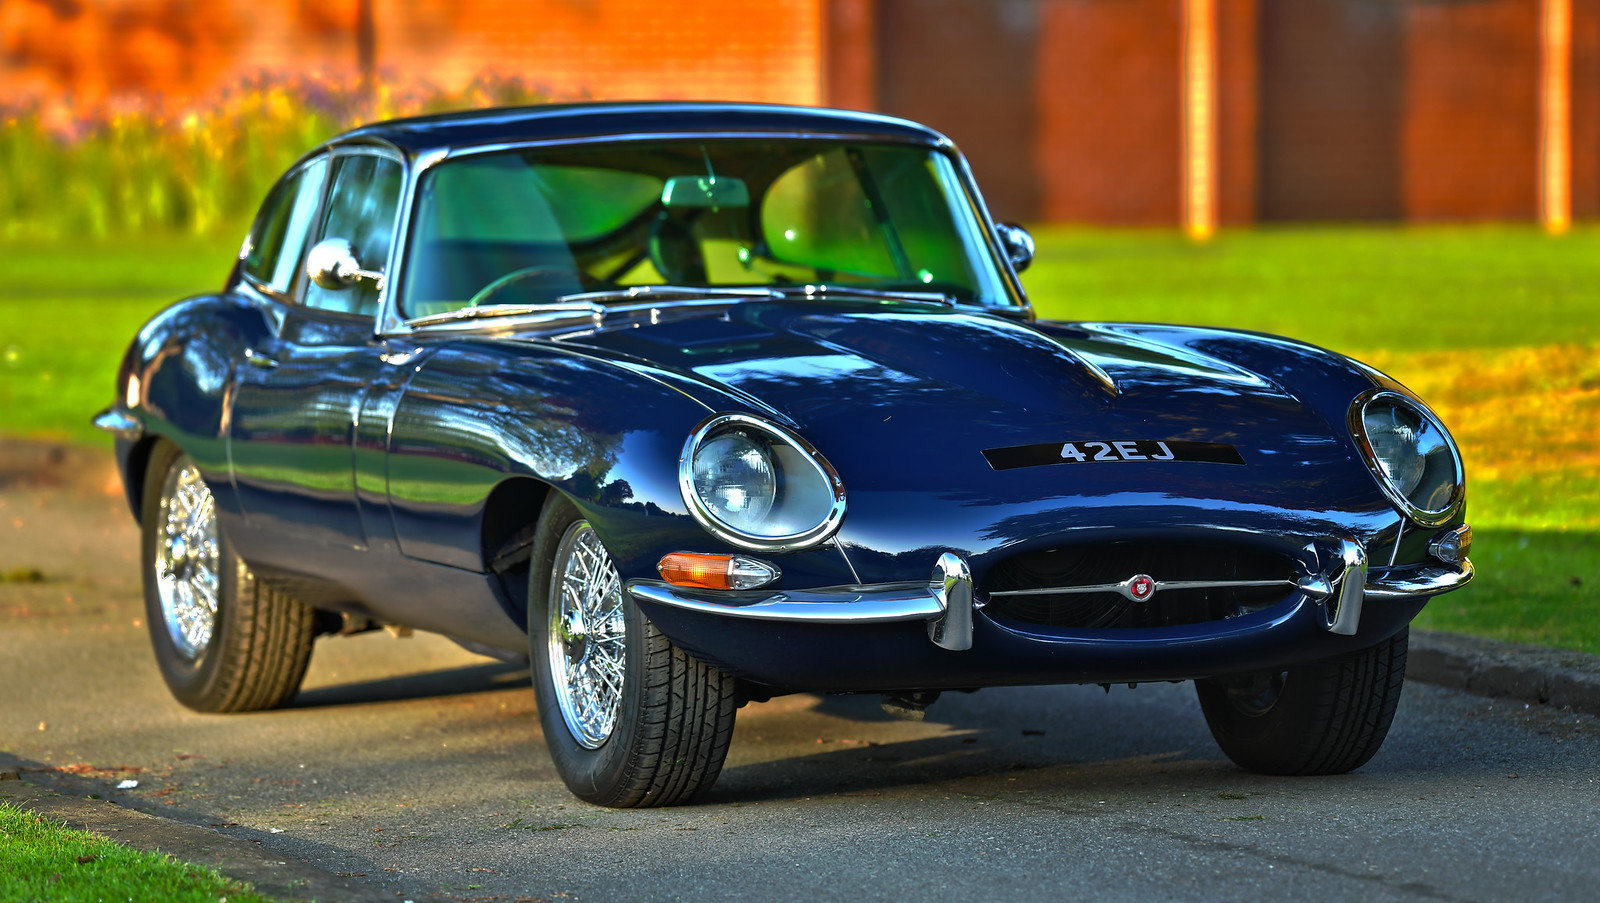 1965 Jaguar E Type Series 1 4.2-Litre Coupe For Sale (picture 1 of 6)